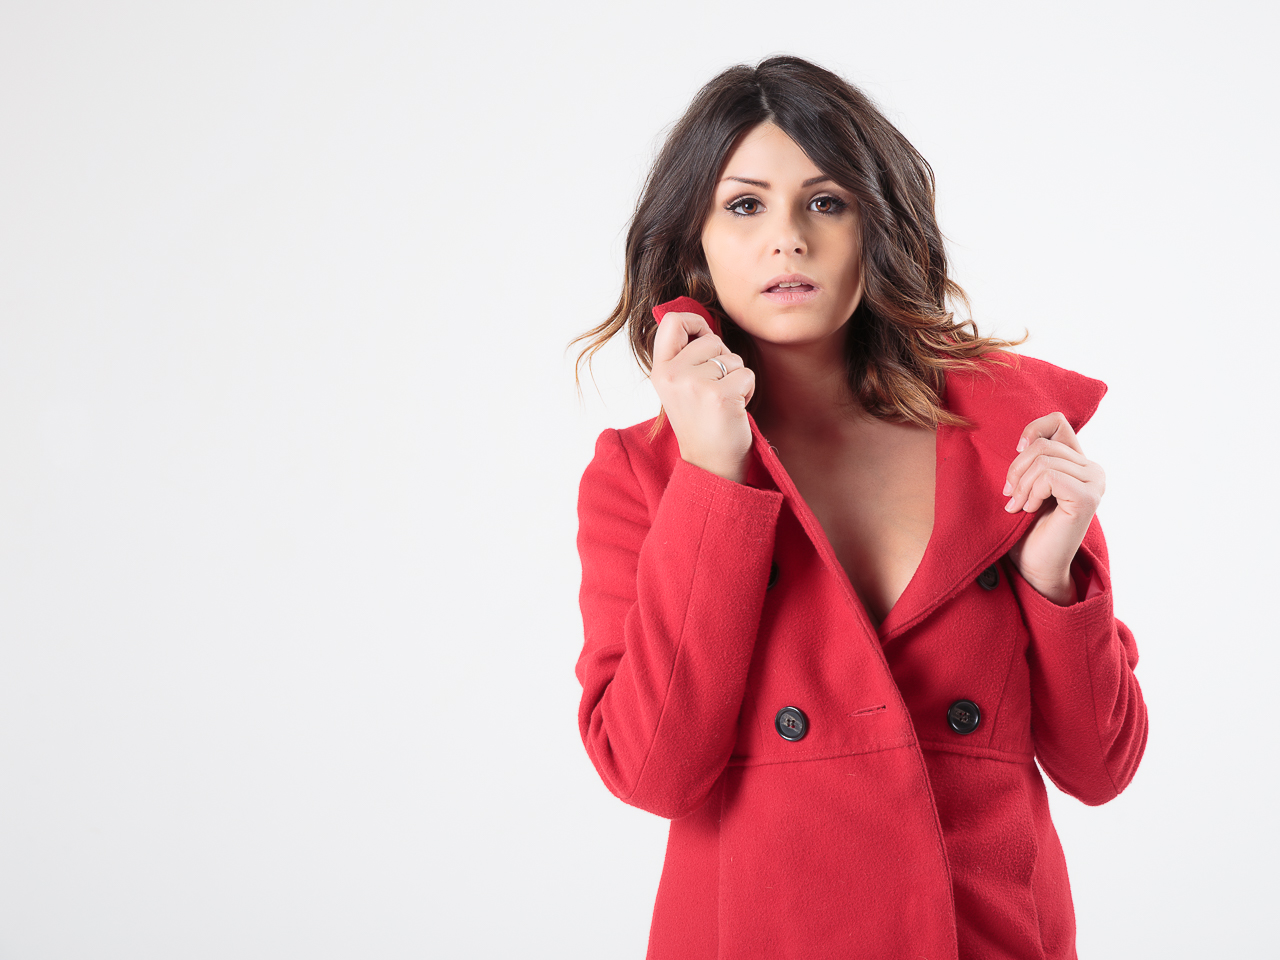 Denise with the red coat #01